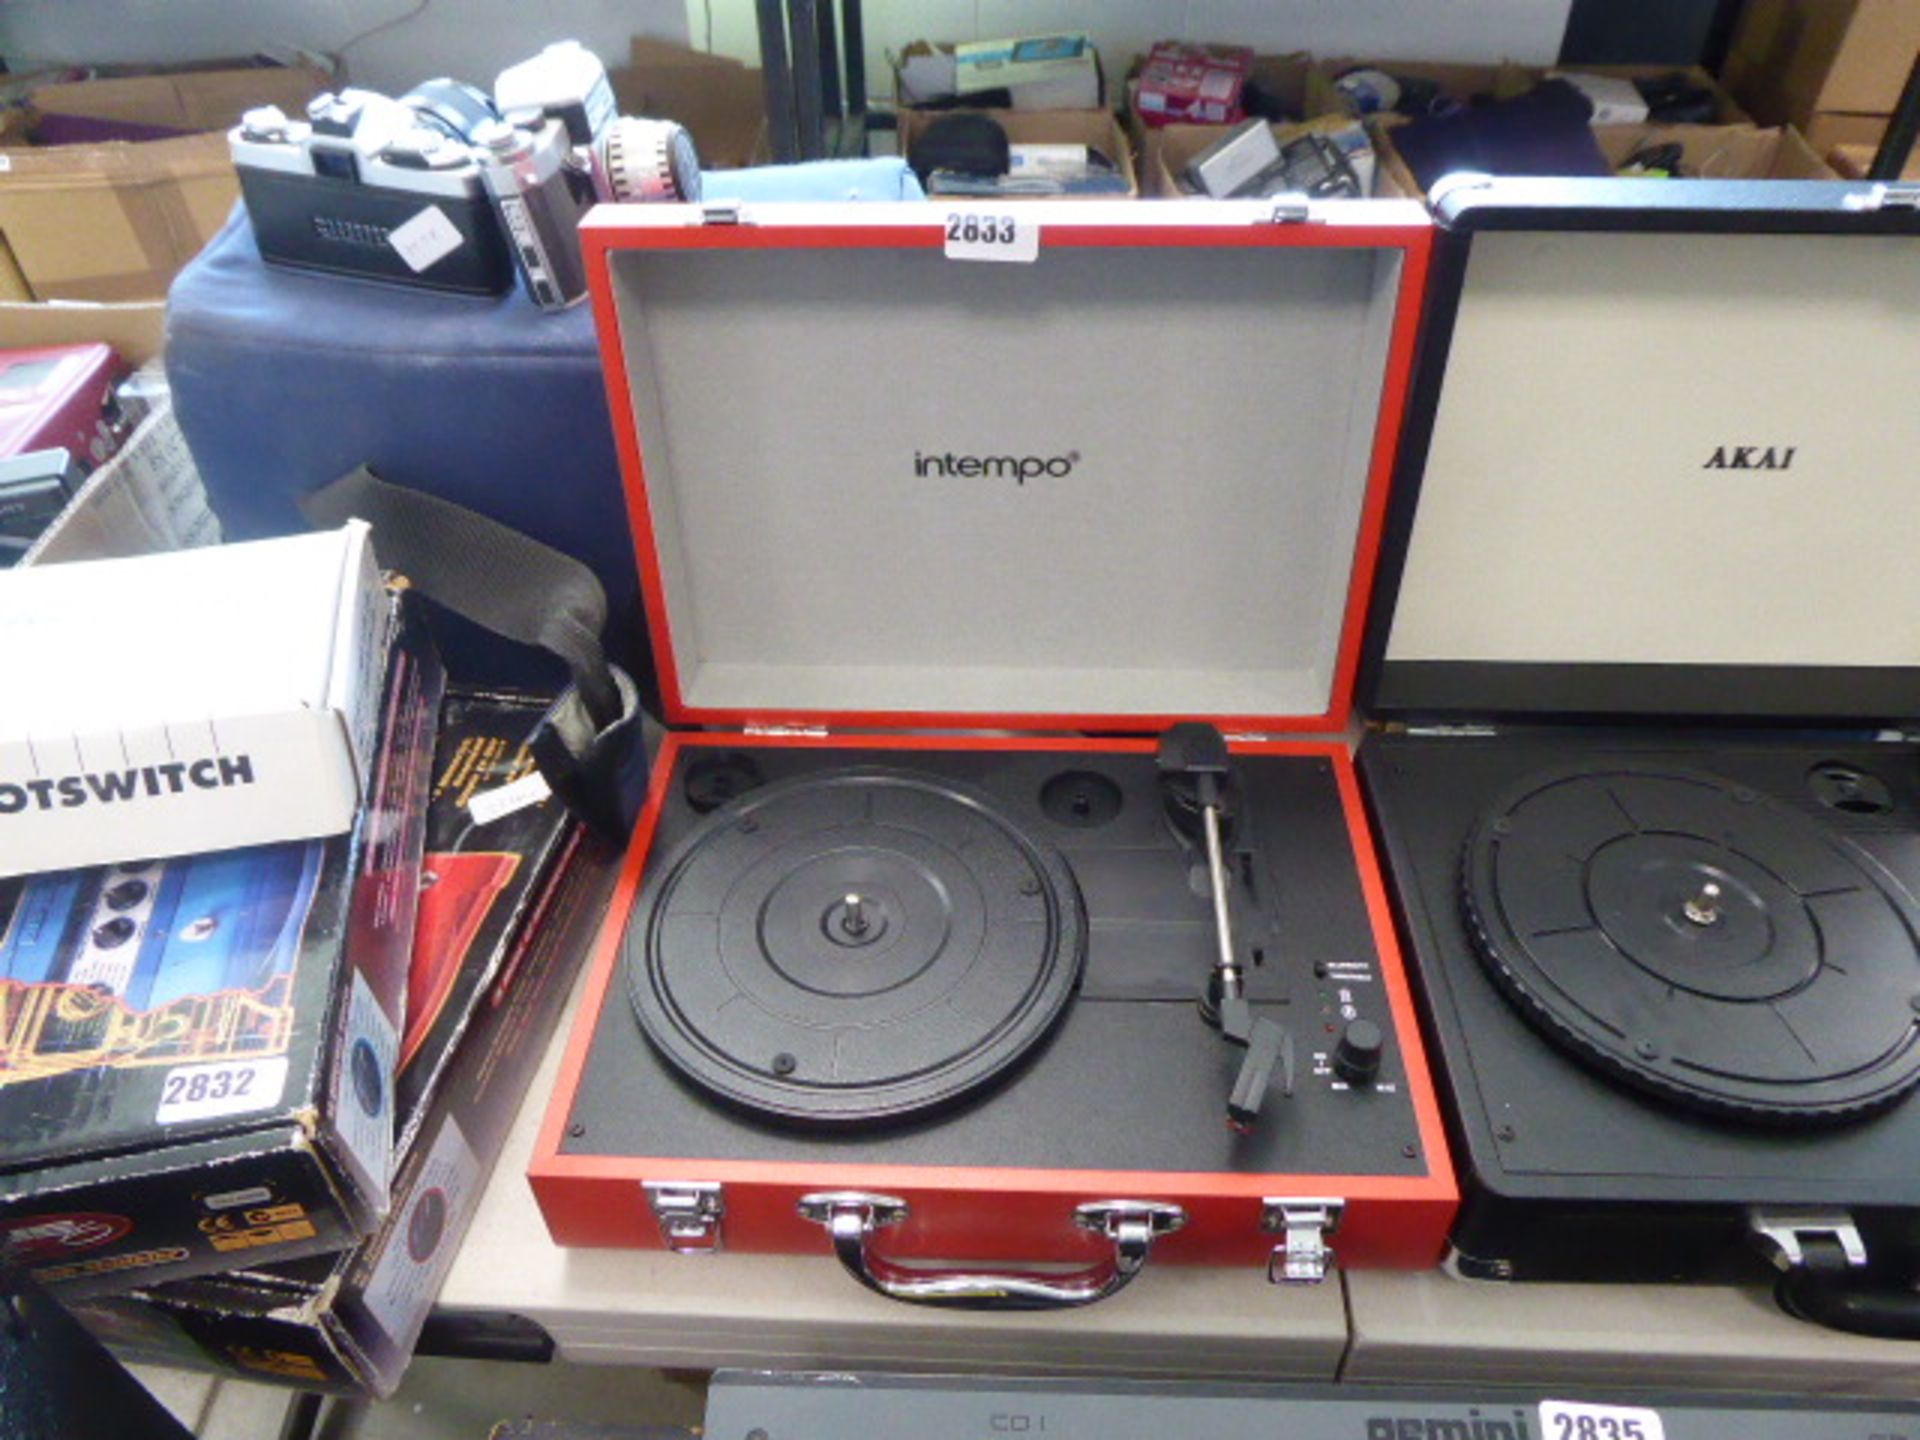 Lotto 2833 - Tempo portable record deck in red case